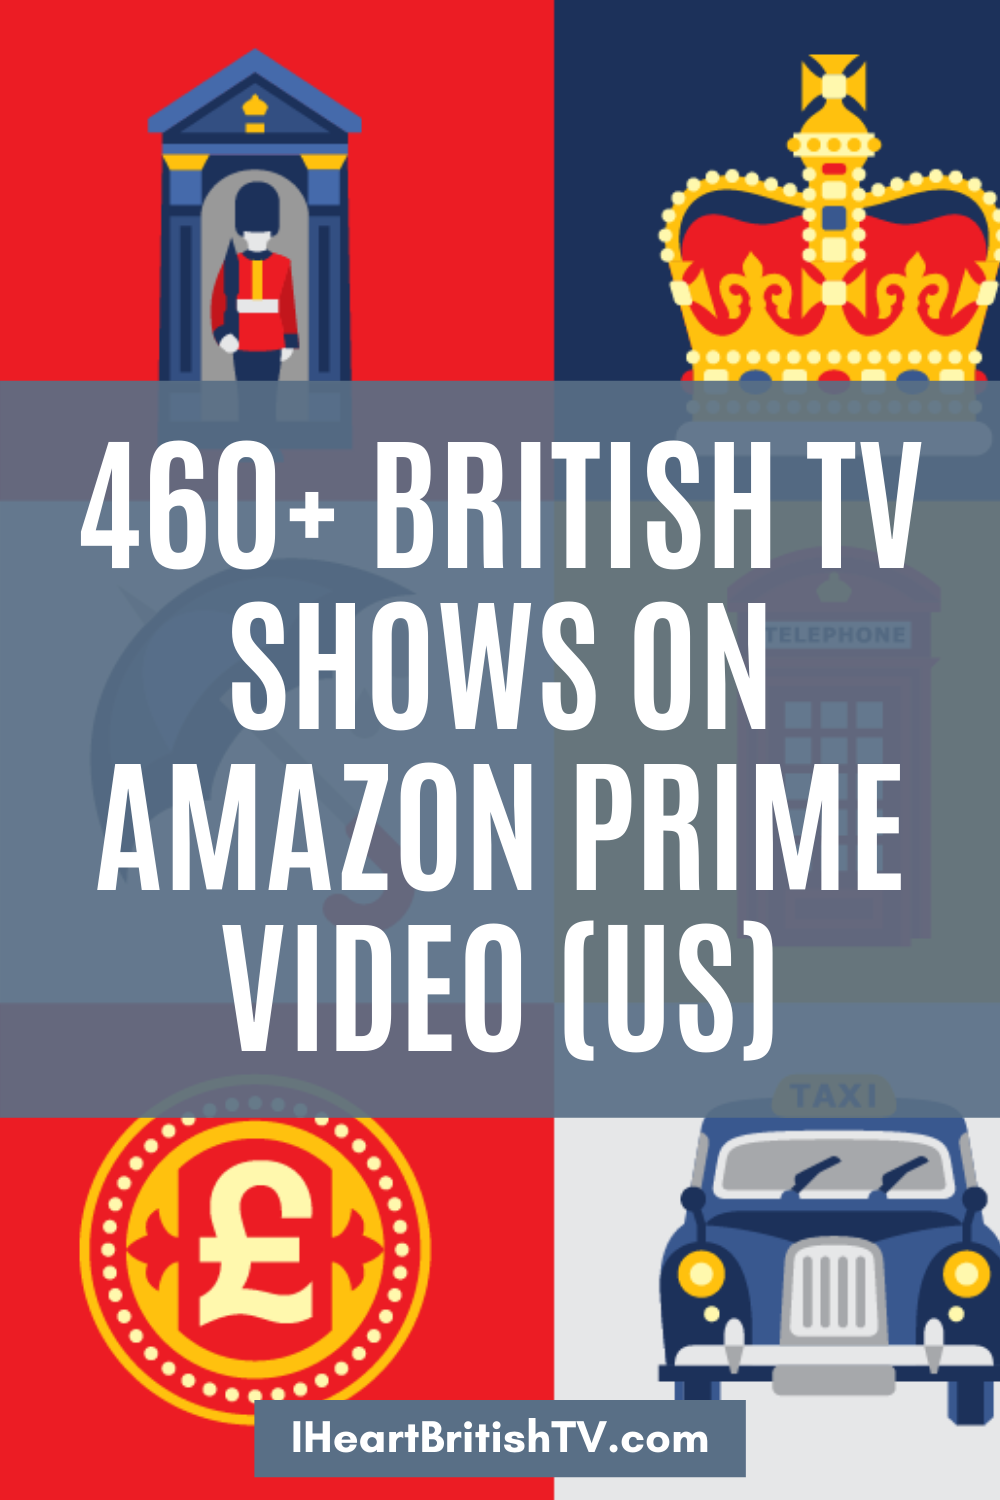 2019 Update 360 British Tv Shows You Can Watch With Amazon Prime Video I Heart British Tv In 2020 Amazon Prime Movies British Tv Amazon Prime Shows